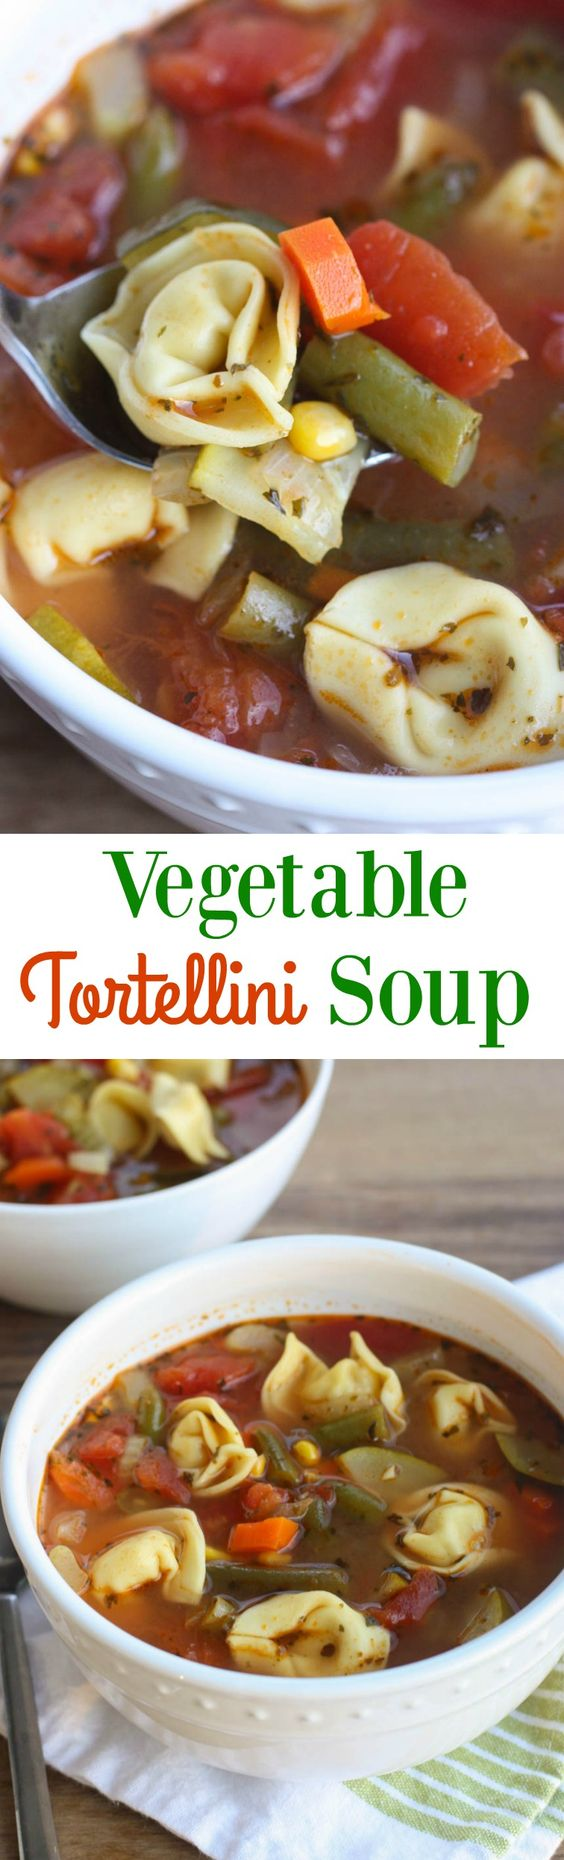 Tortellini soup, Tortellini and Vegetables on Pinterest